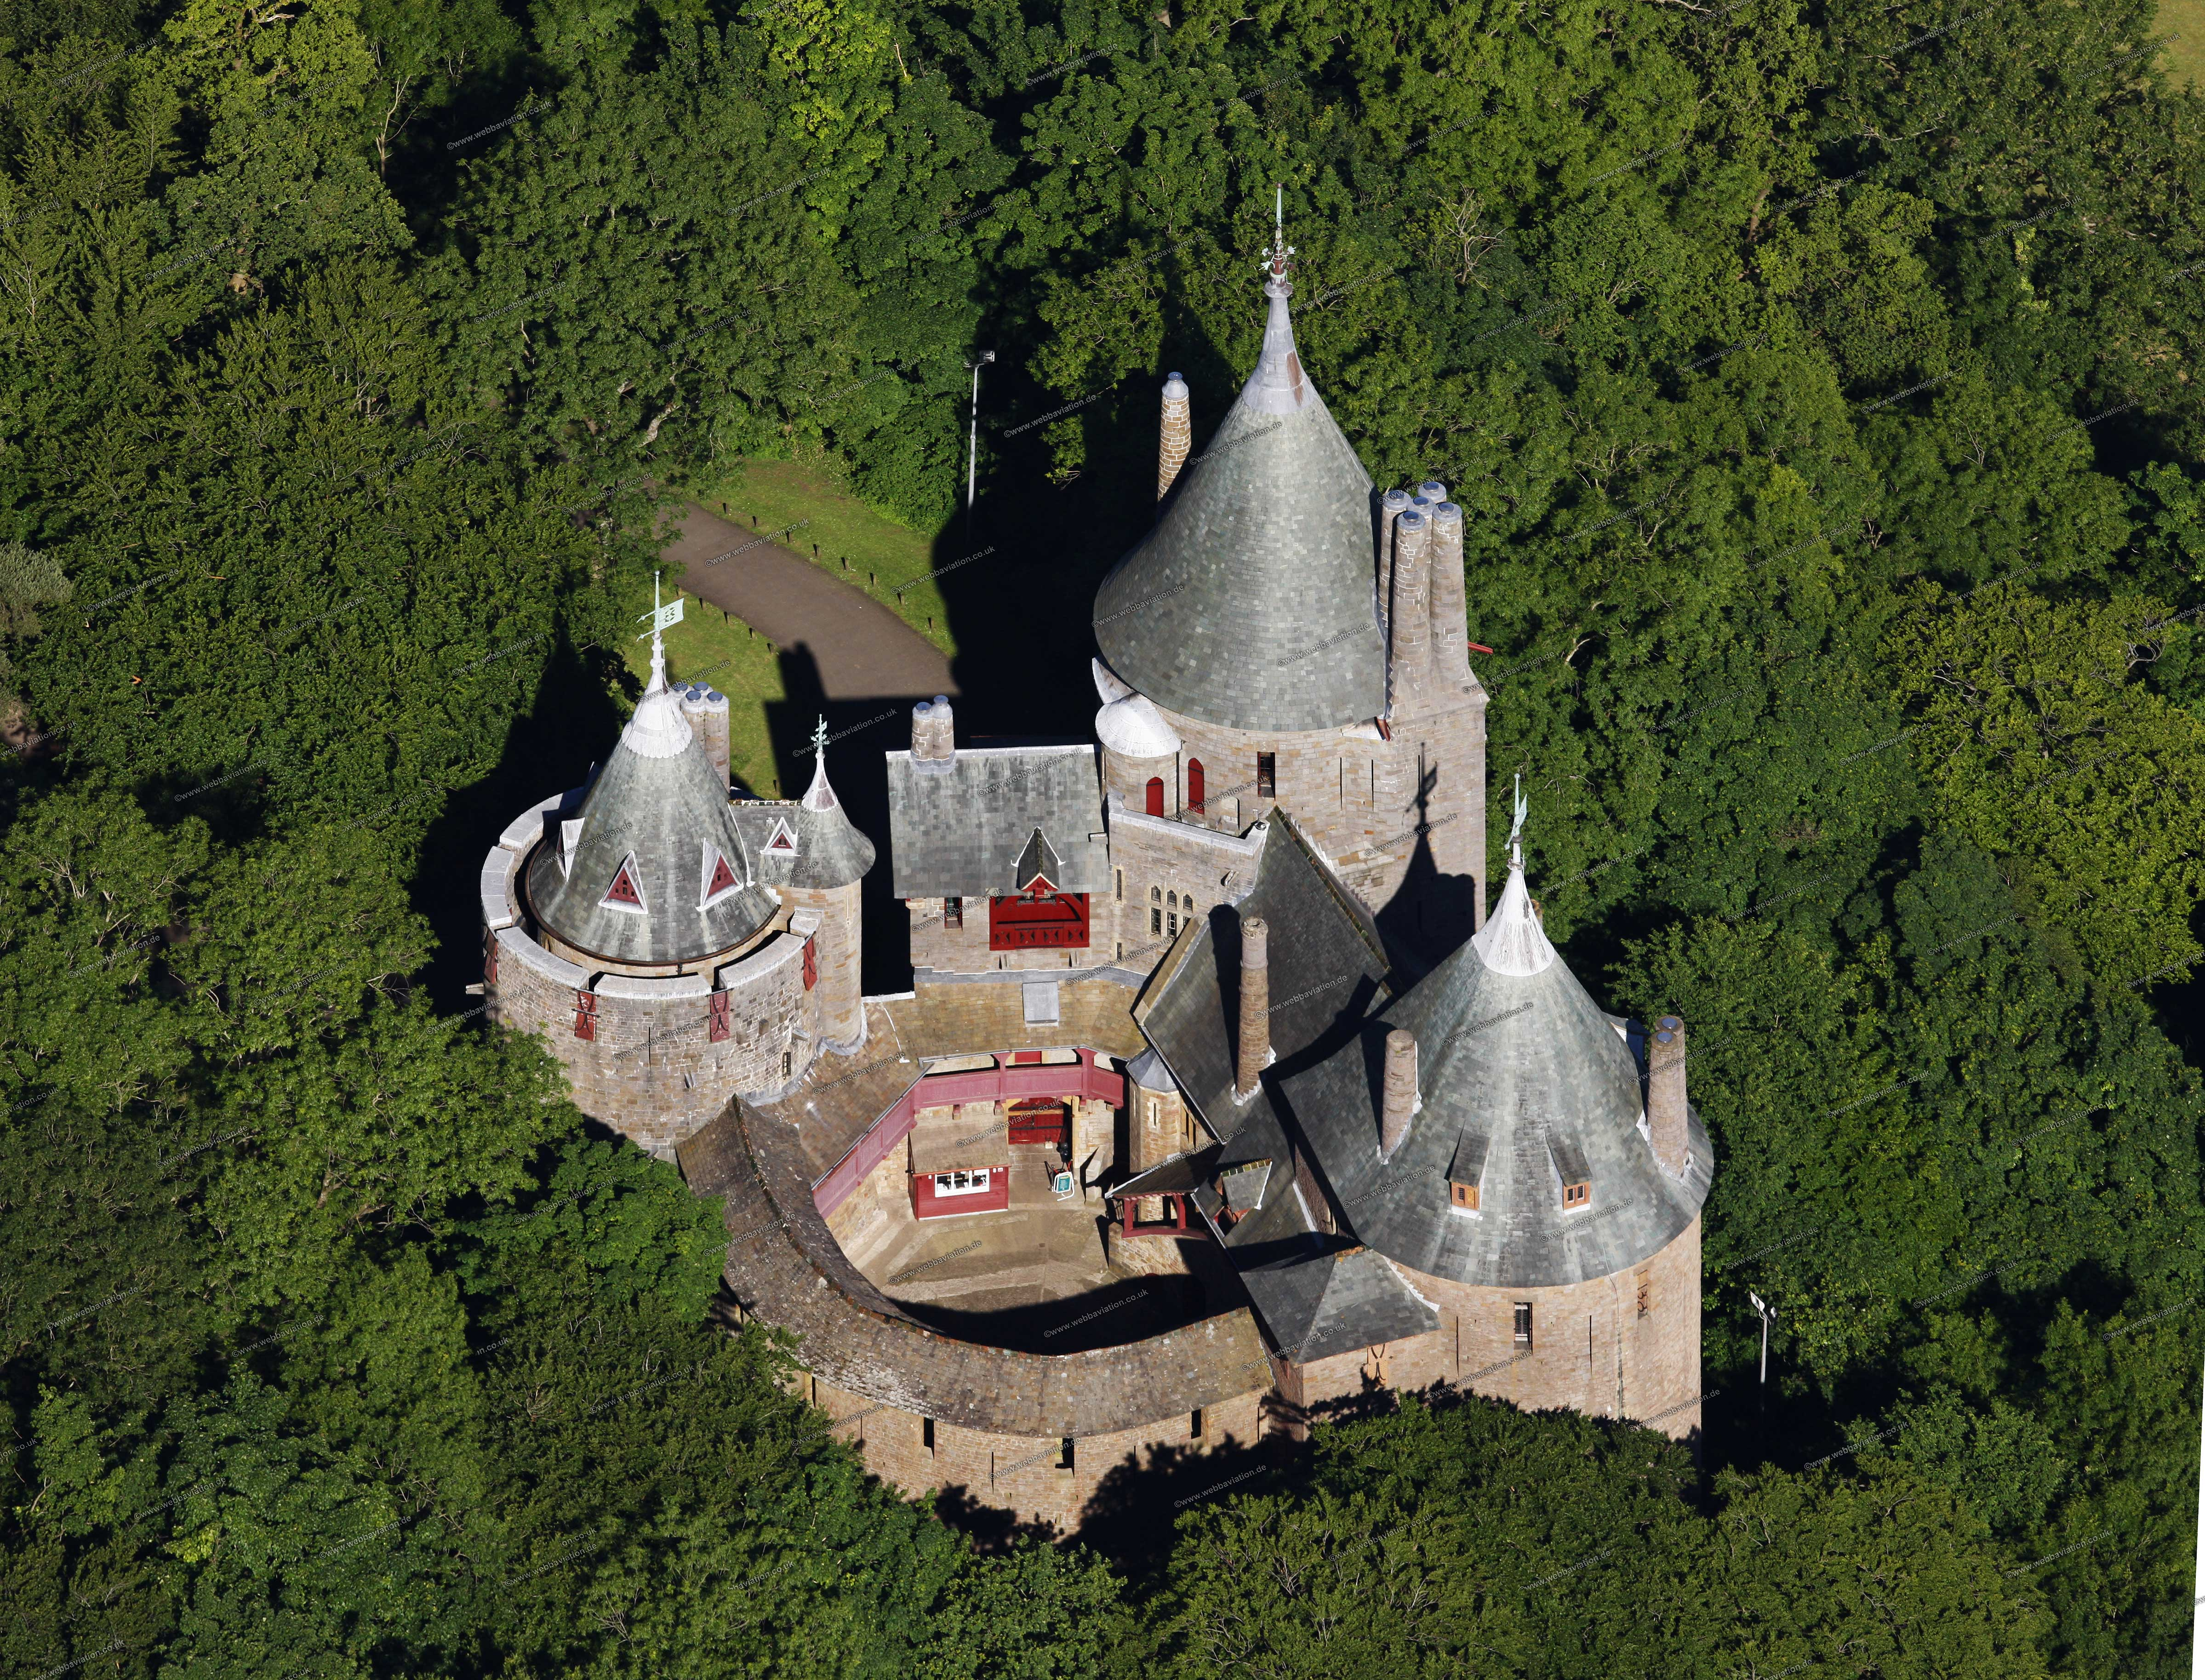 Castell Coch Cardiff, The Red Castle (Castell Coch) in Cardiff (Wales), UK   CASTLES ...